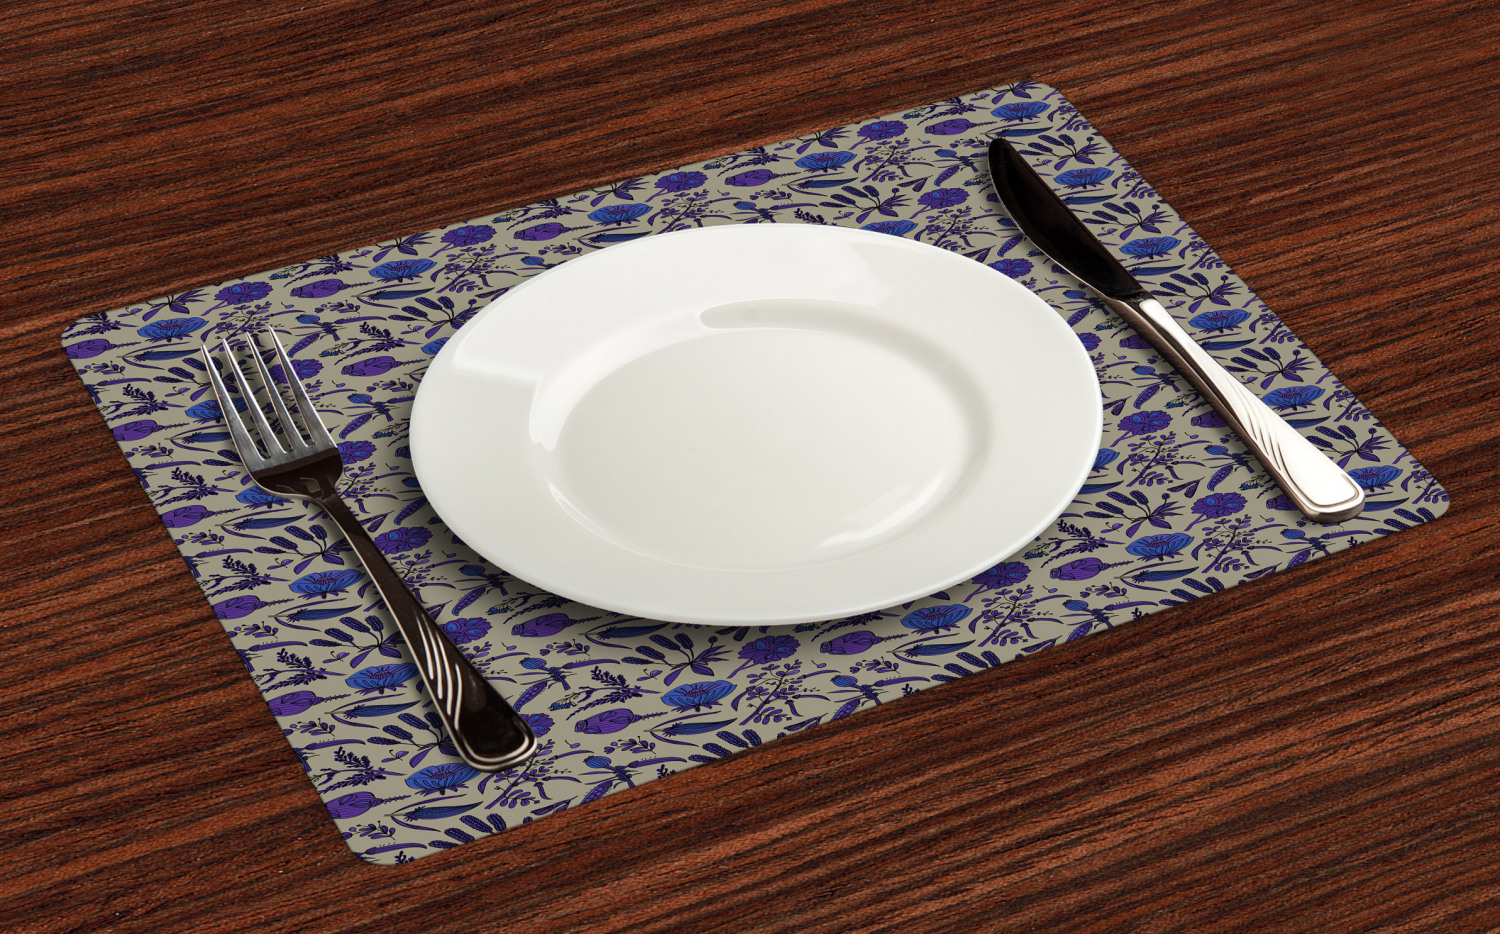 Ambesonne-Flower-Pattern-Placemat-Set-of-4-Fabric-Place-Mats-for-Table-Decor thumbnail 137